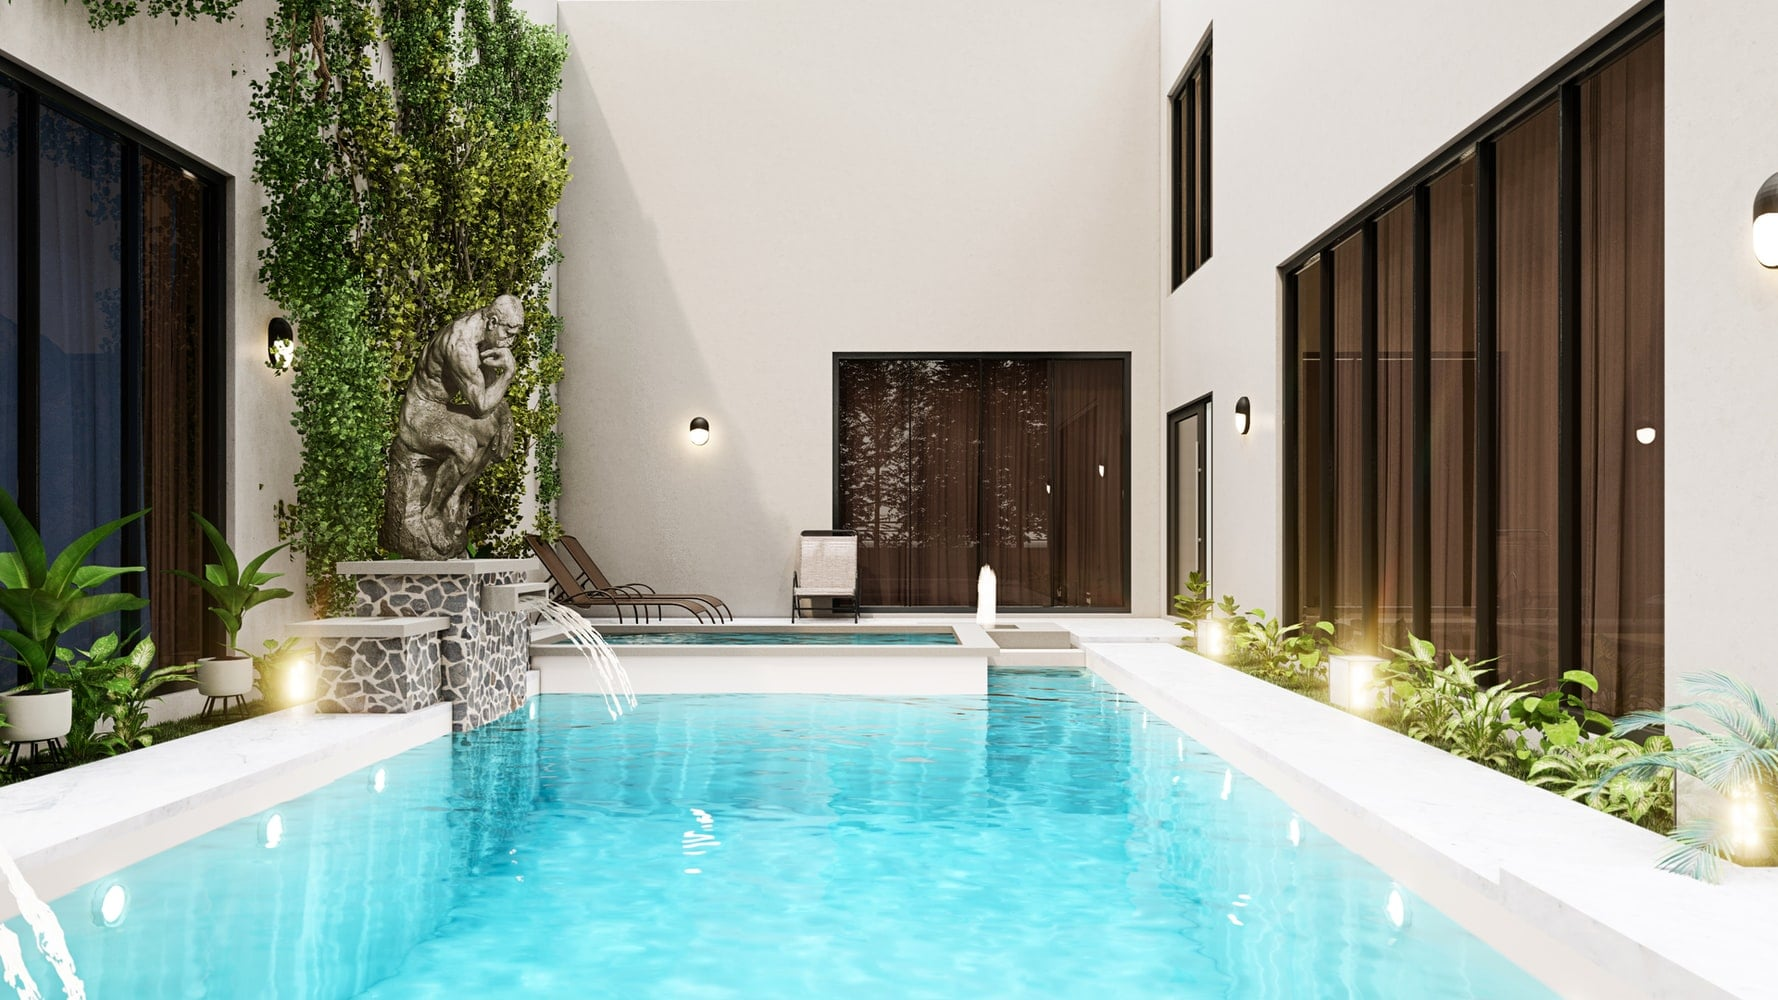 Swimming Pool Installations in Ontario Increased Dramatically in 2020